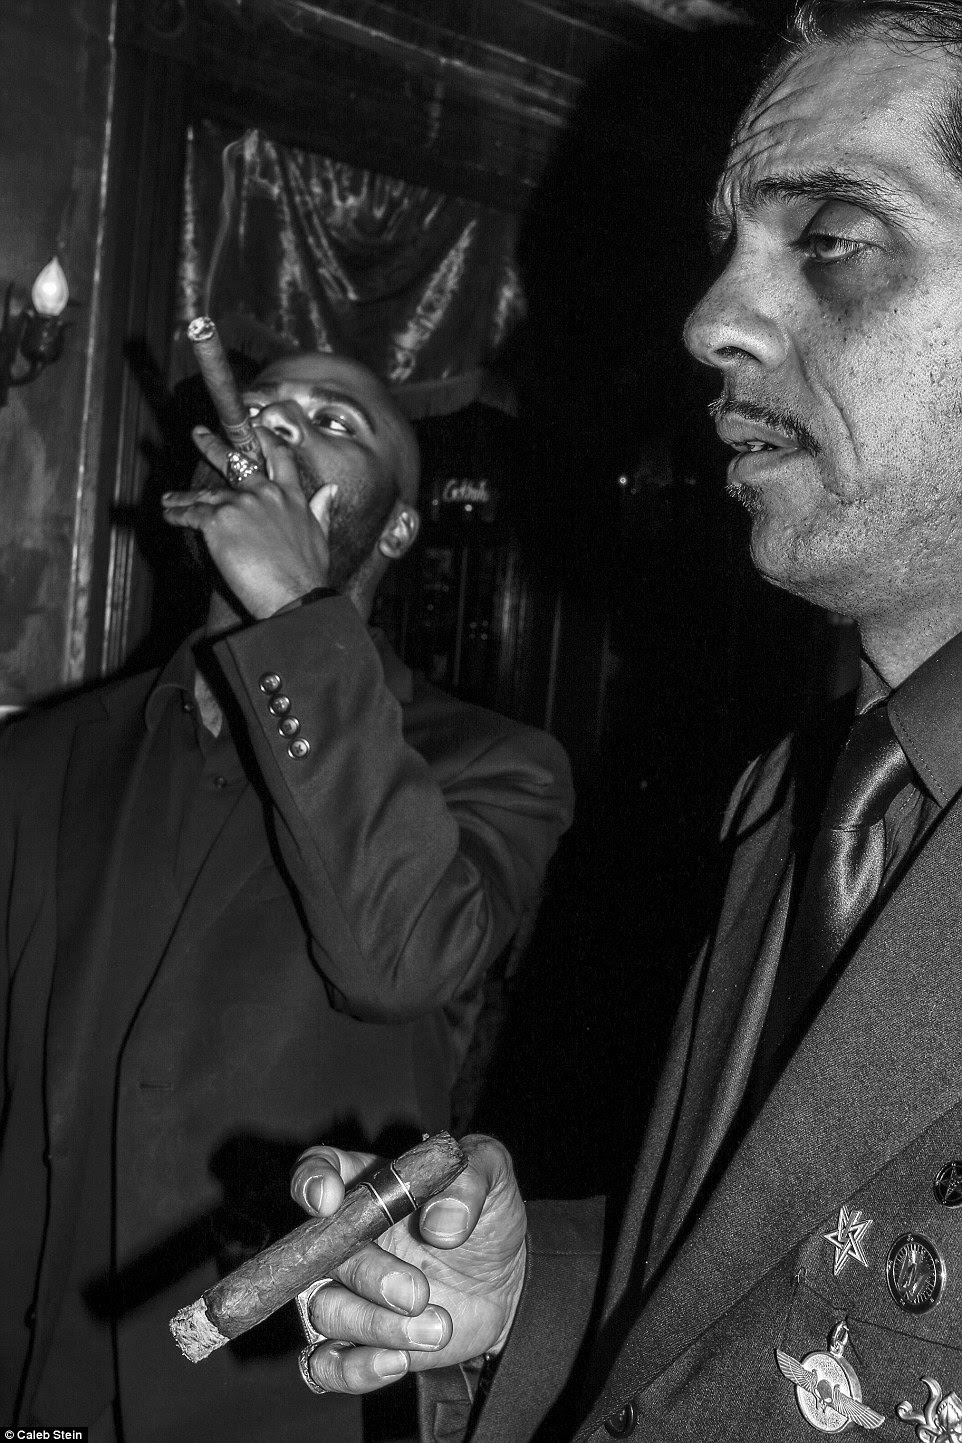 Residents Danny and Michael are pictured smoking cigars at Joe Netherworld's Satanist 'Winter Frolic' Party on Clinton Street in Poughkeepsie